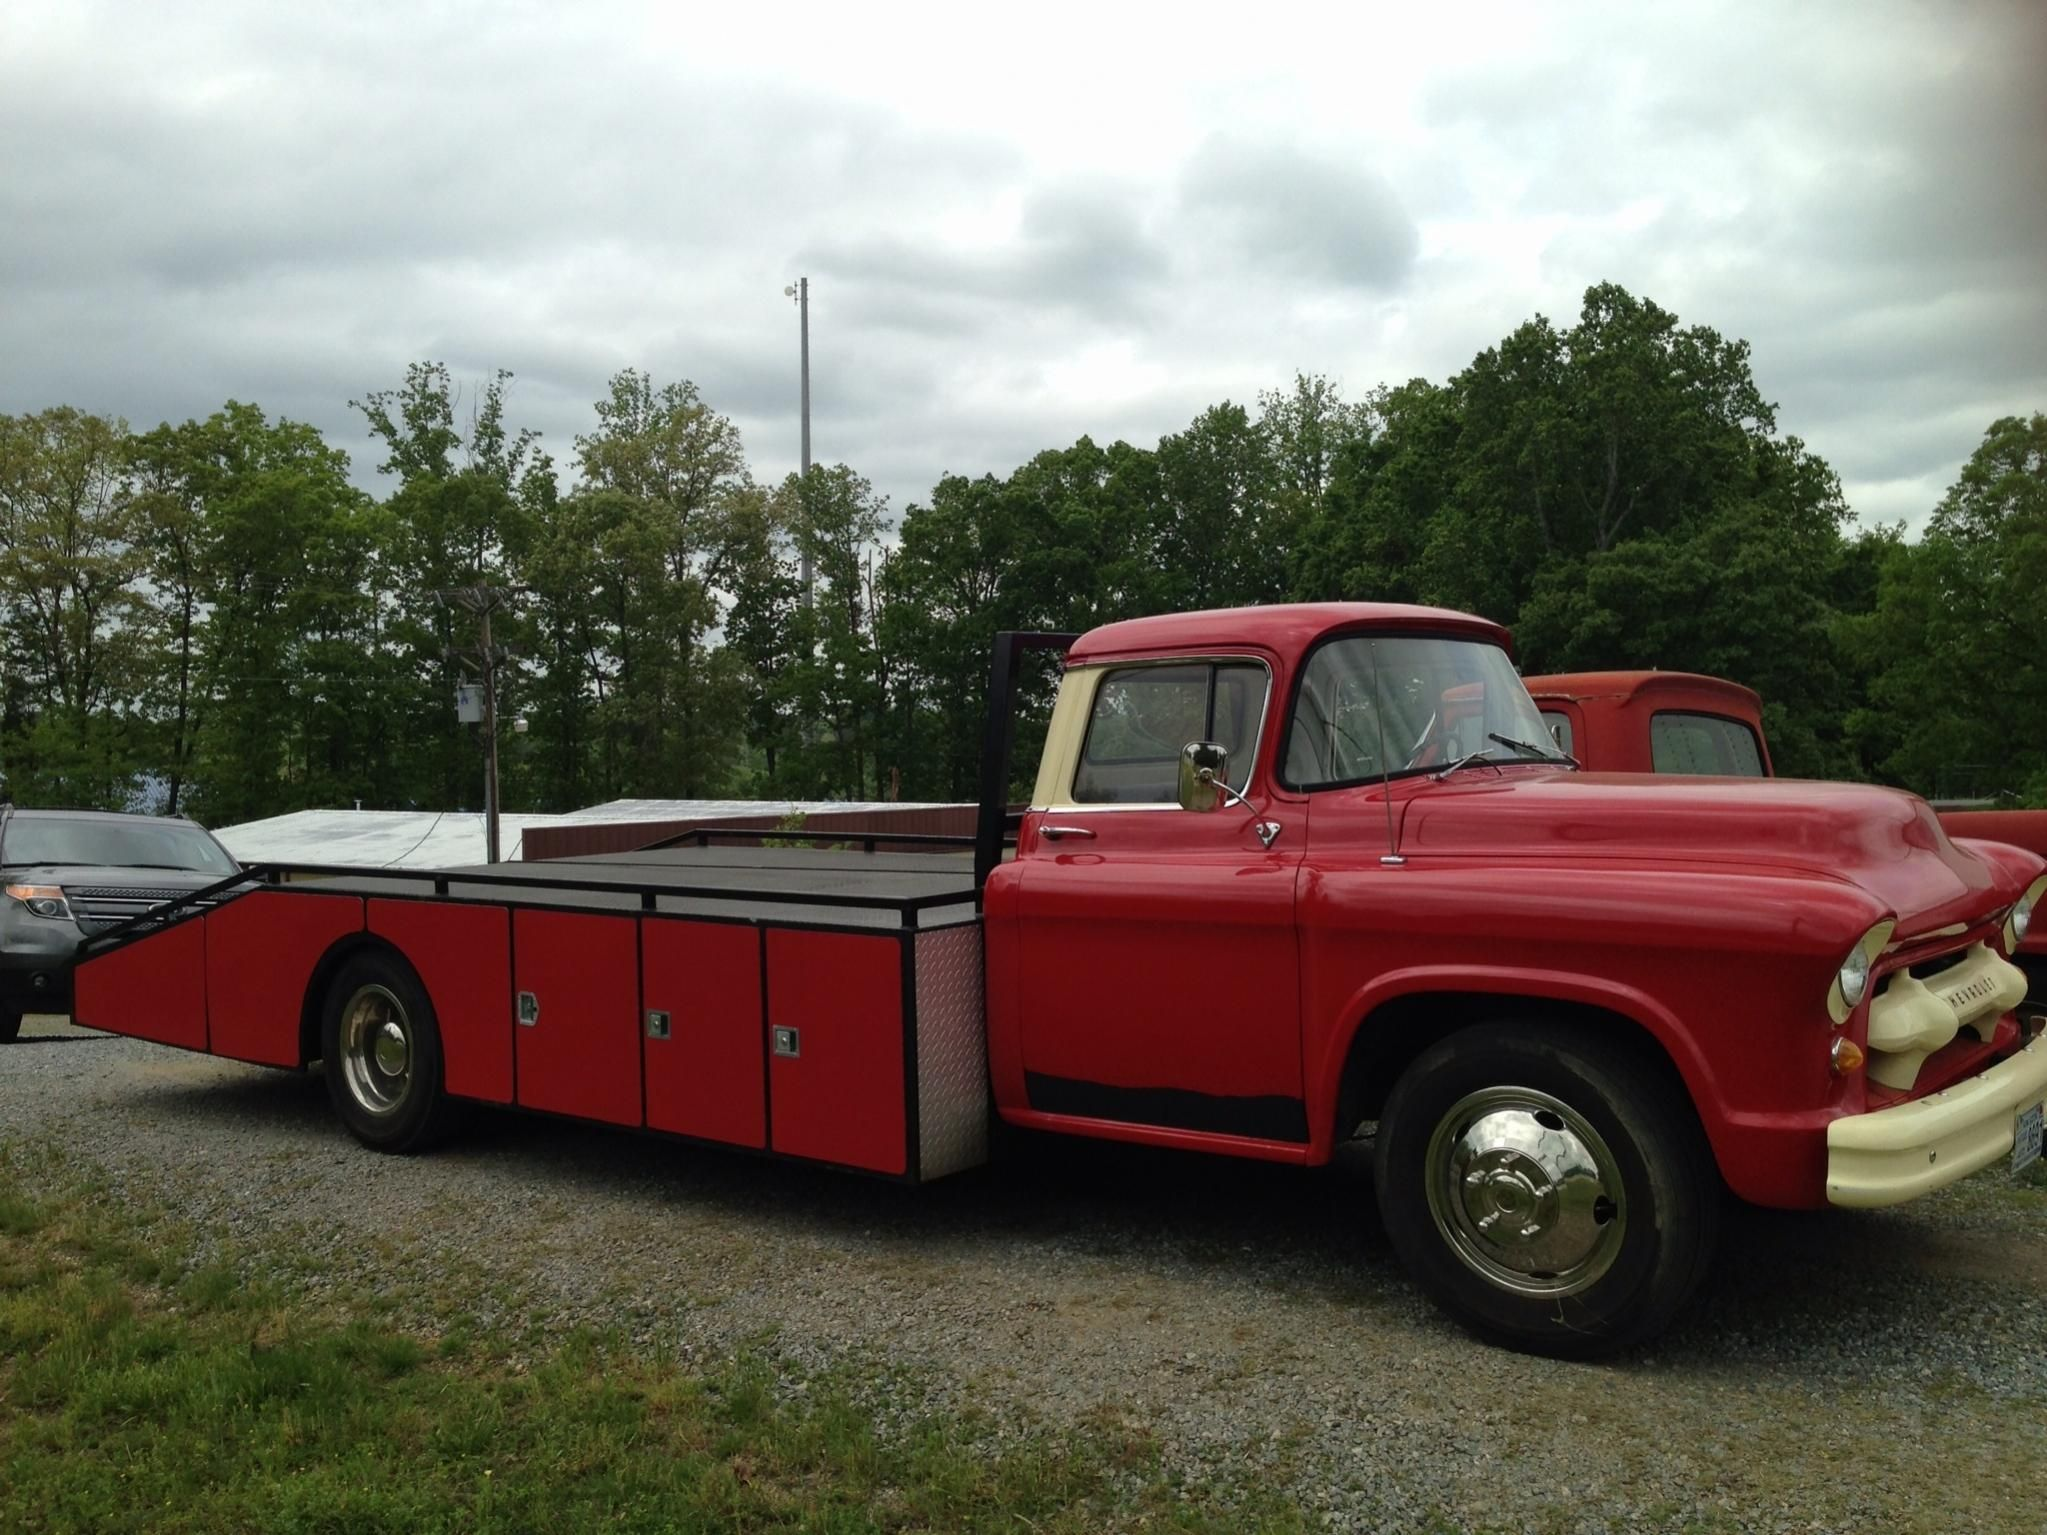 1955 chevy fire truck converted to hauler